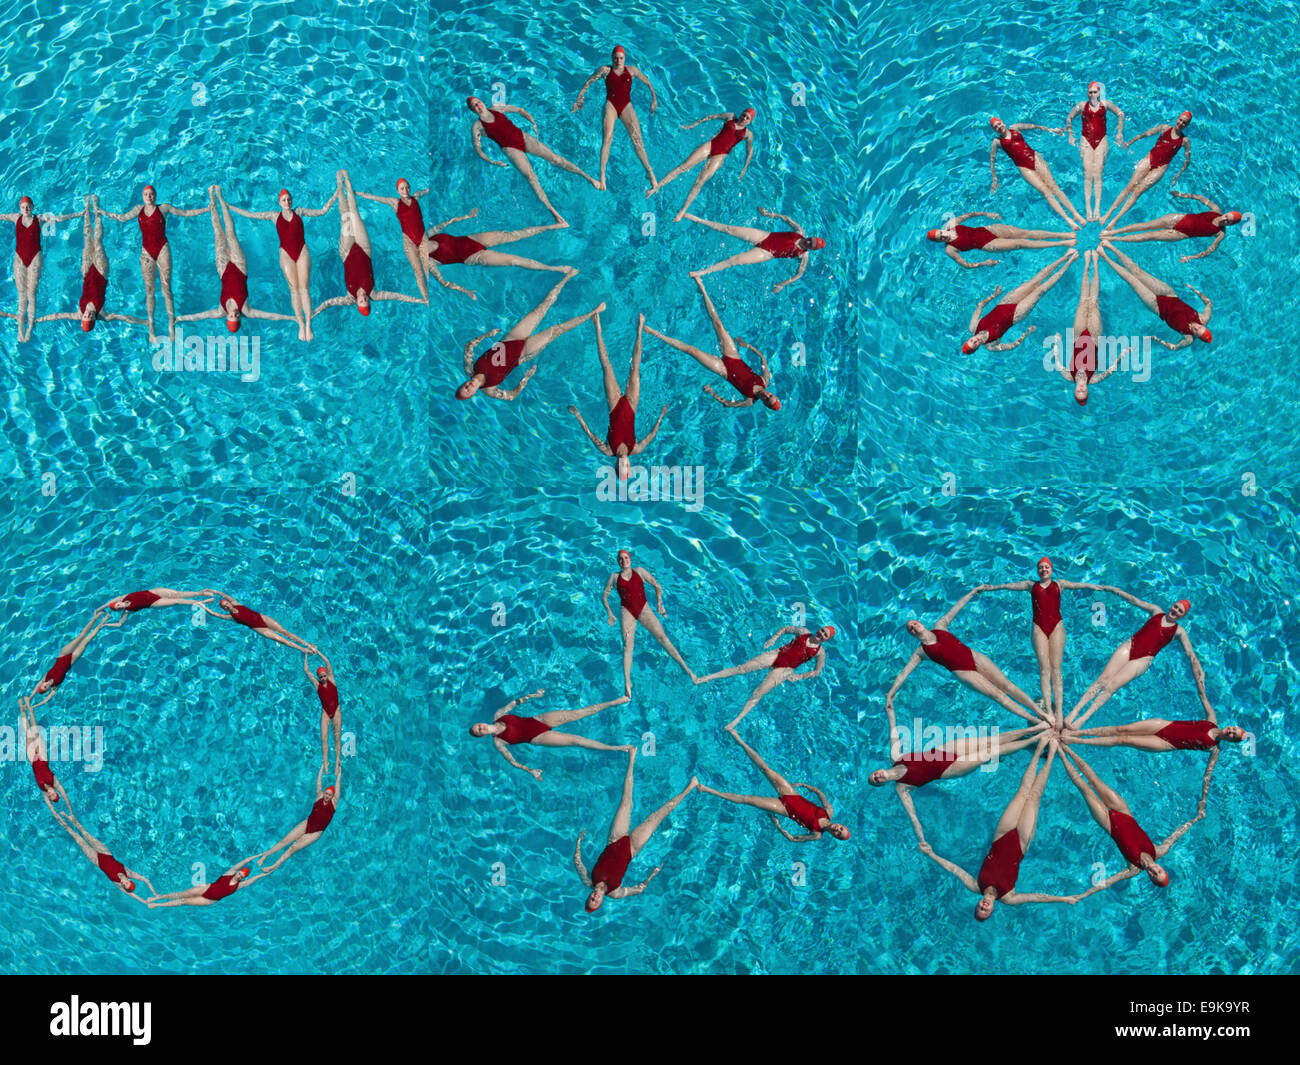 Collage of female synchronized swimmers forming various shape in swimming pool Stock Photo